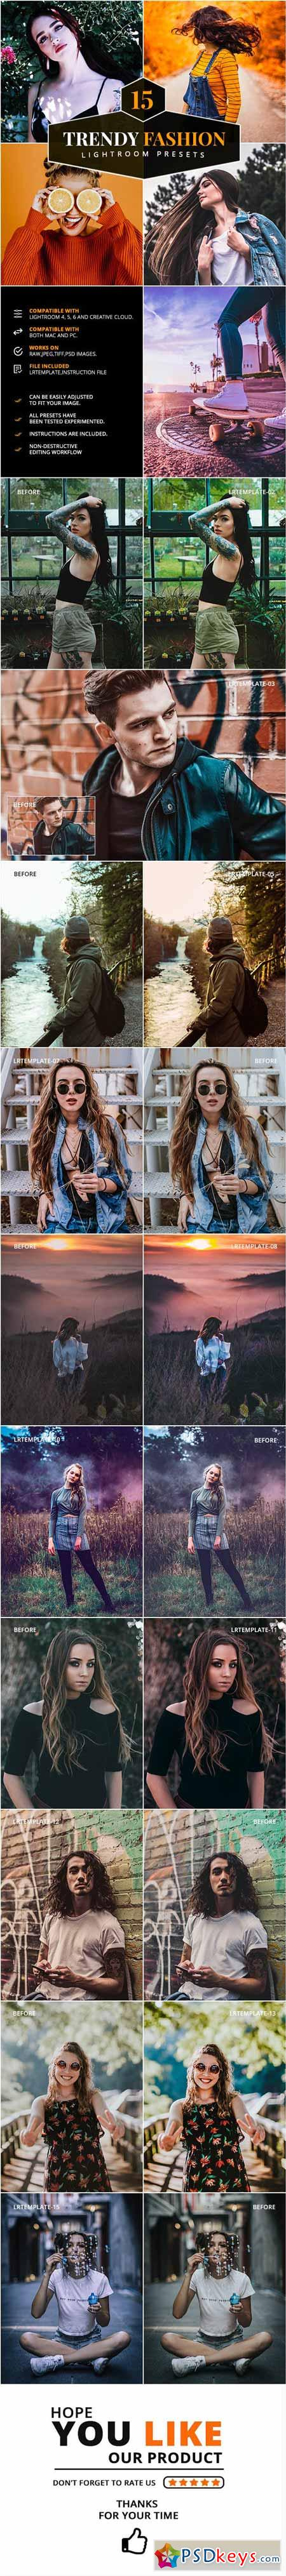 15 Trendy Fashion Lightroom Presets 23075289